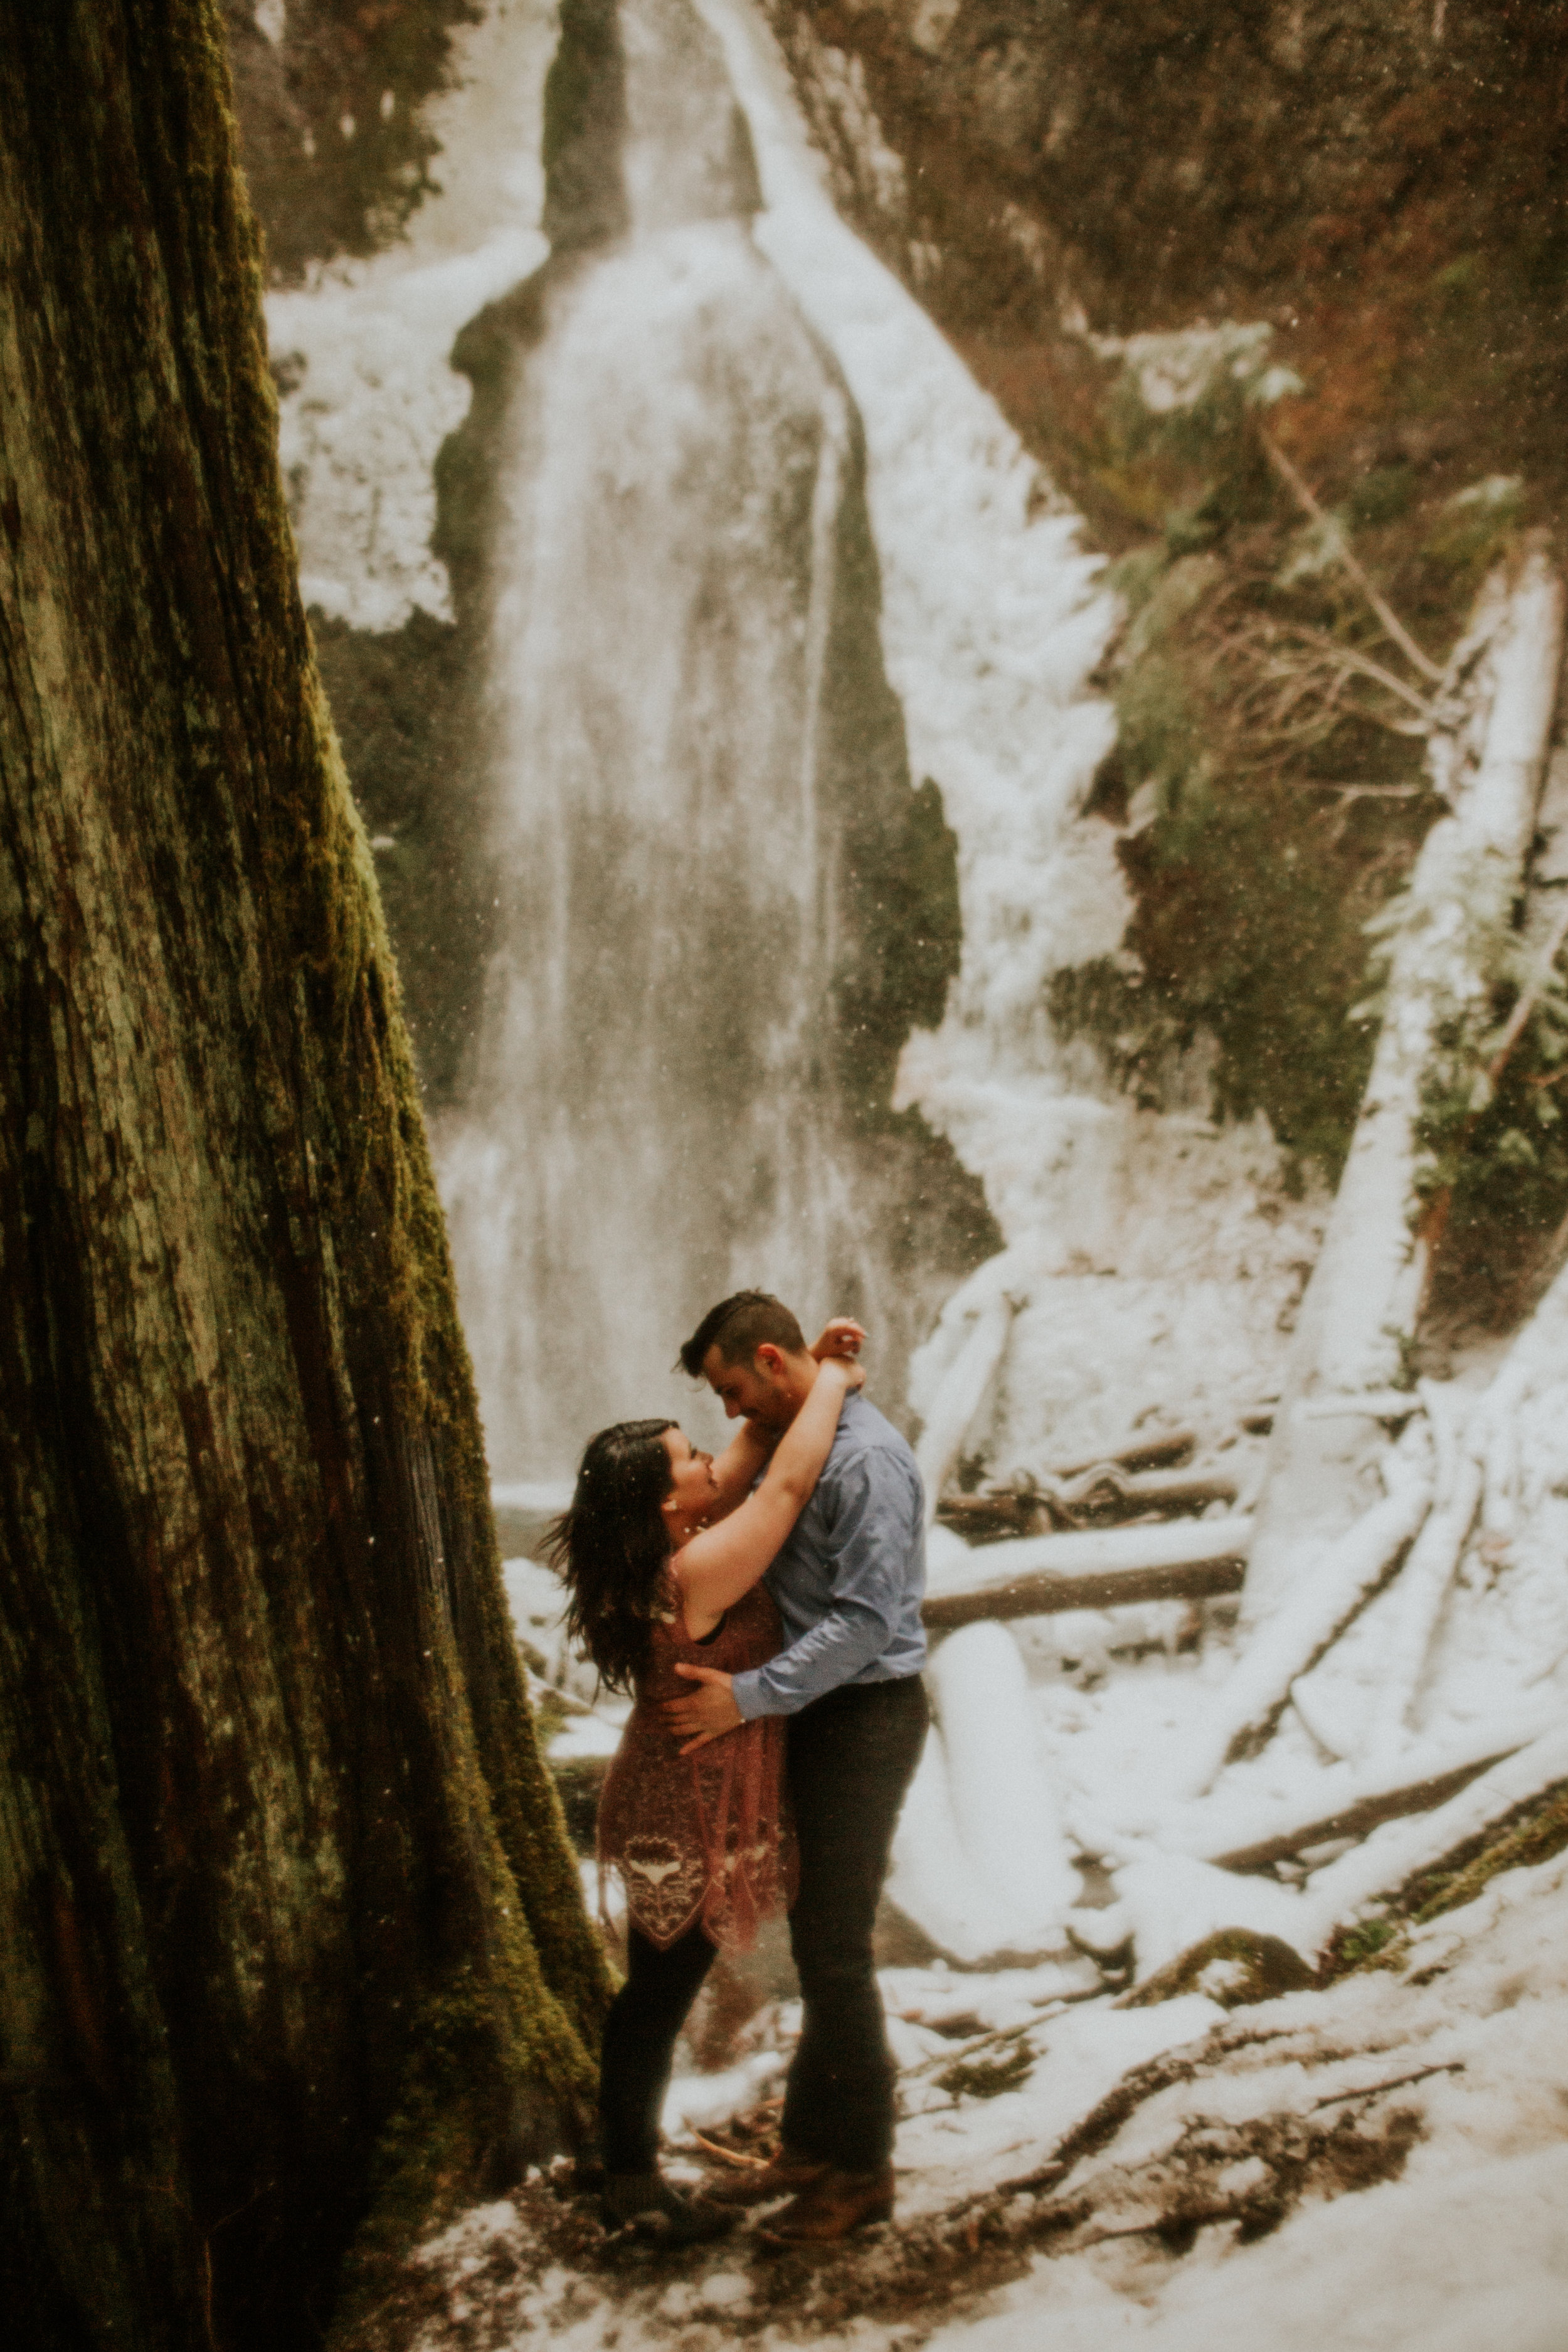 marymere falls engagement session at olympic peninsula by breeanna lasher